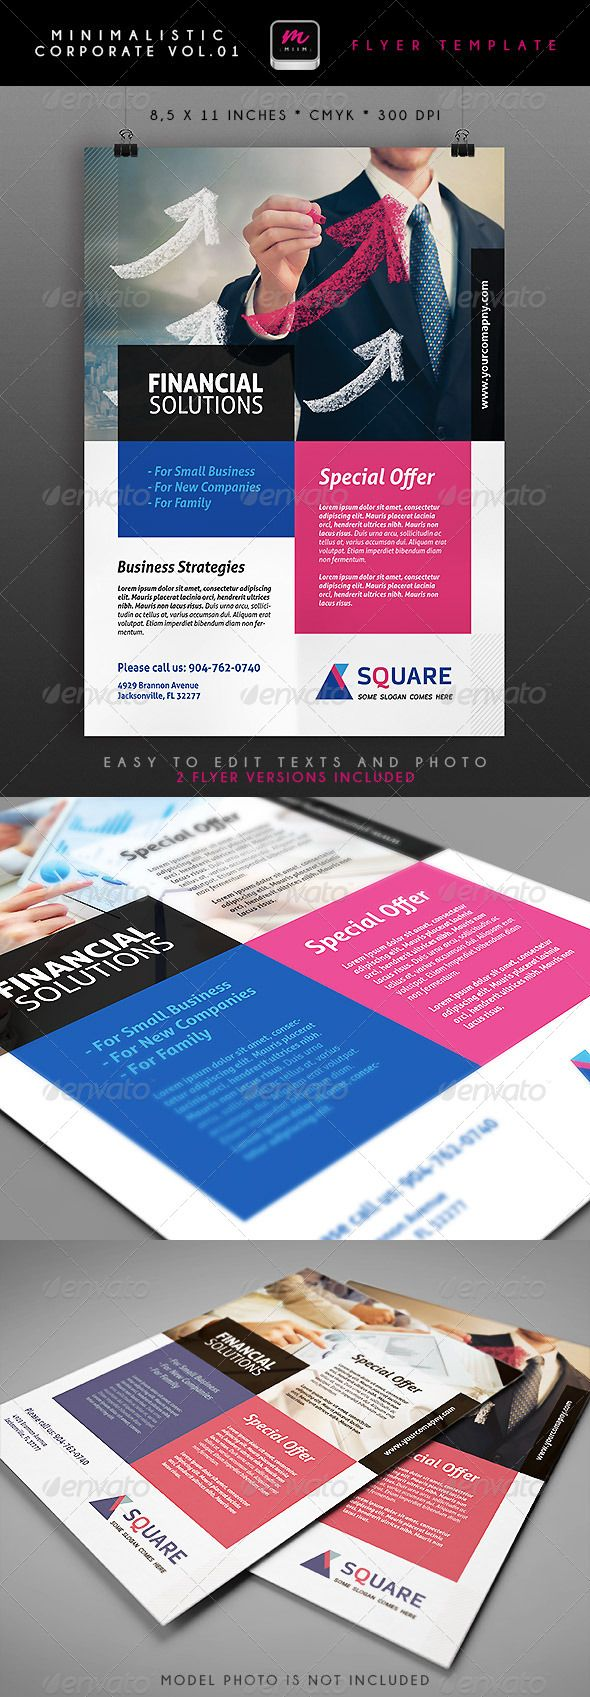 Minimalistic Corporate Flyer 1 - http://graphicriver.net/item/minimalistic-corporate-flyer-1/4949173?ref=cruzine